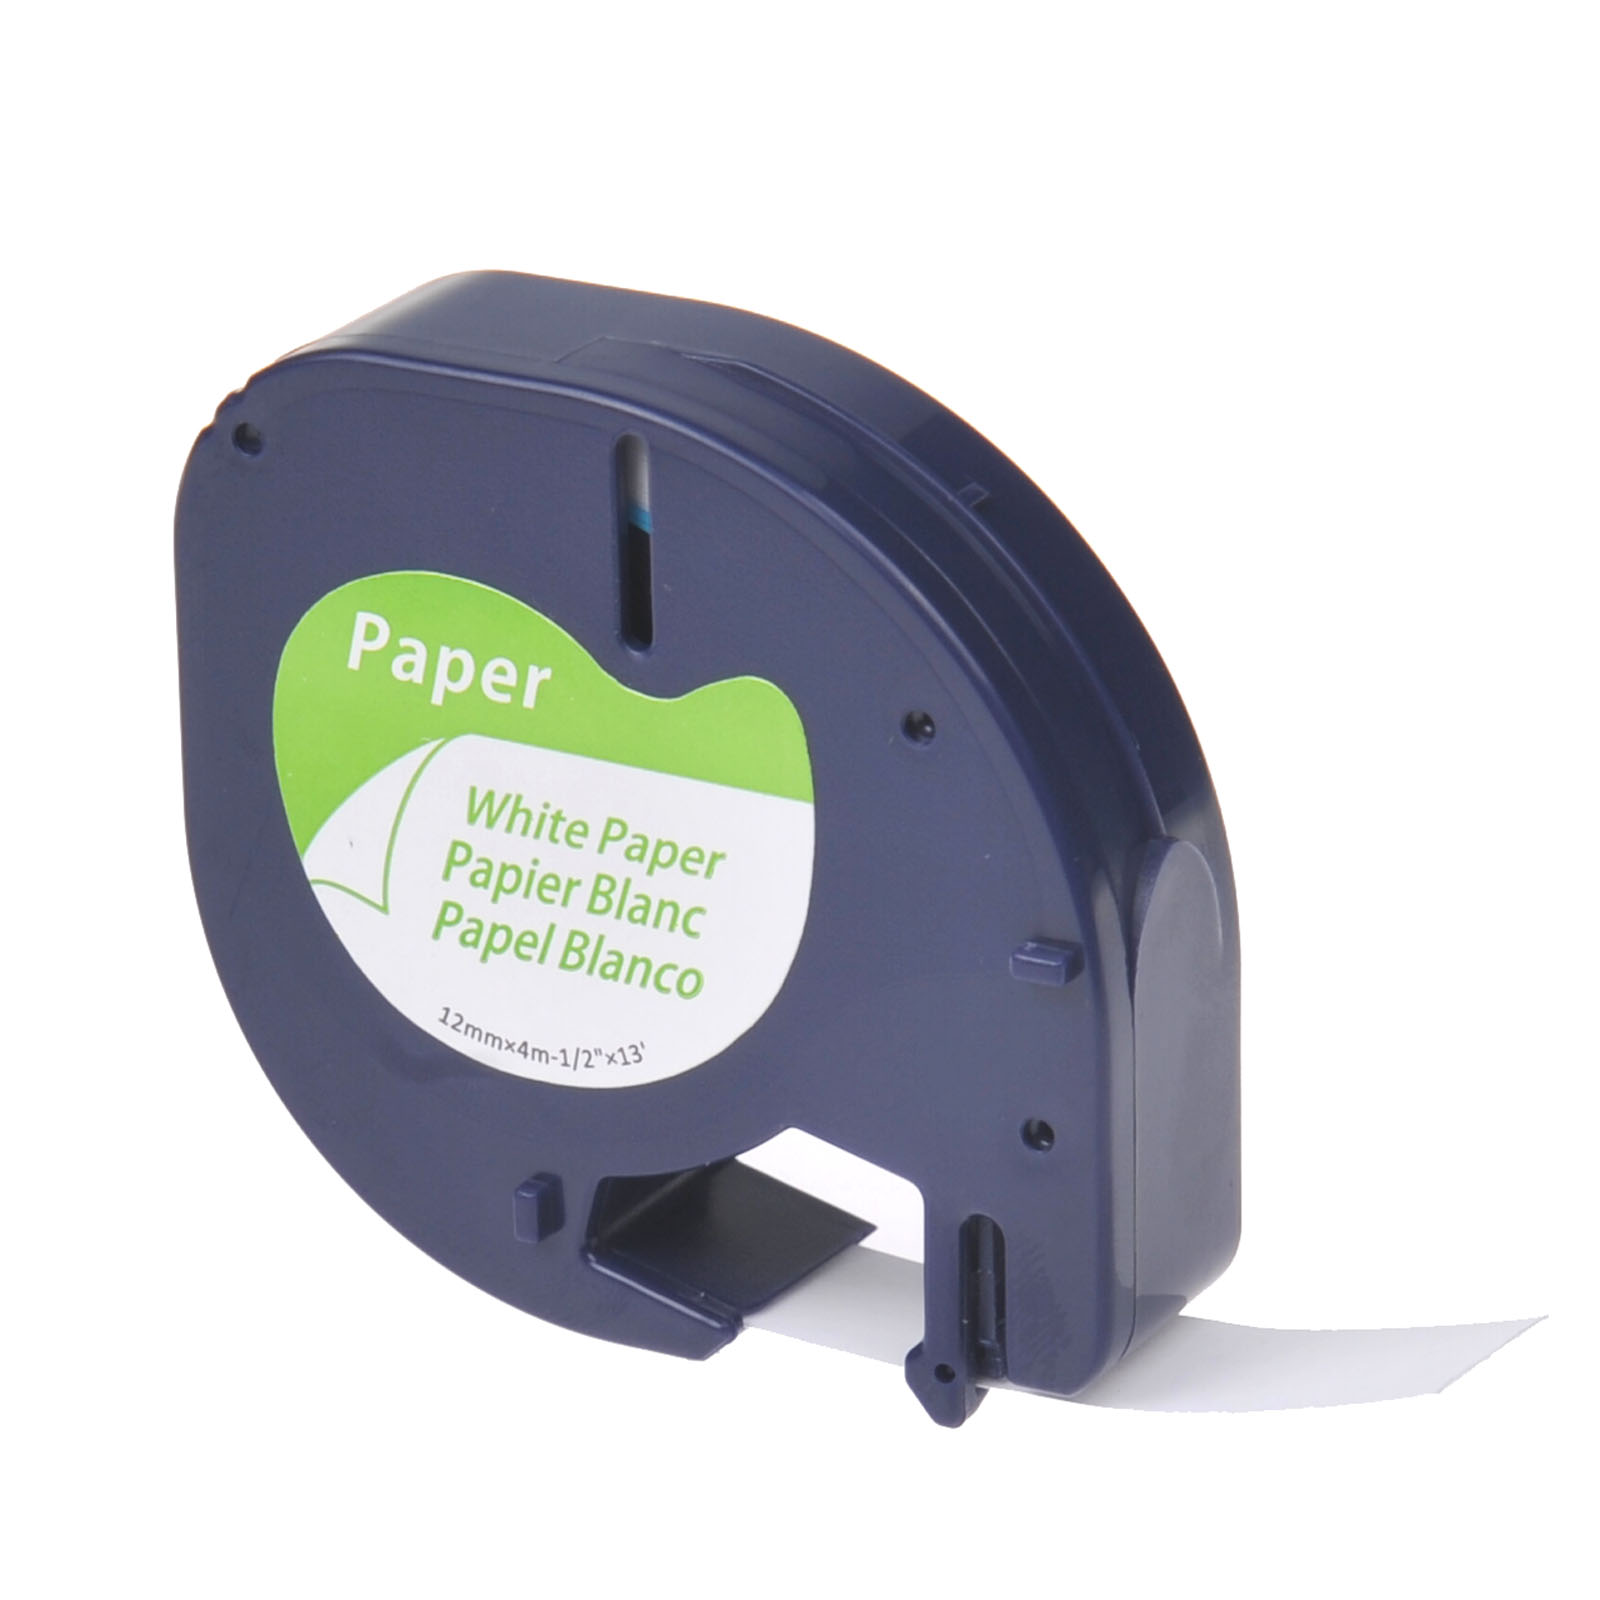 4 PK For DYMO Letratag Refills Label Tape 91330 12mm Black